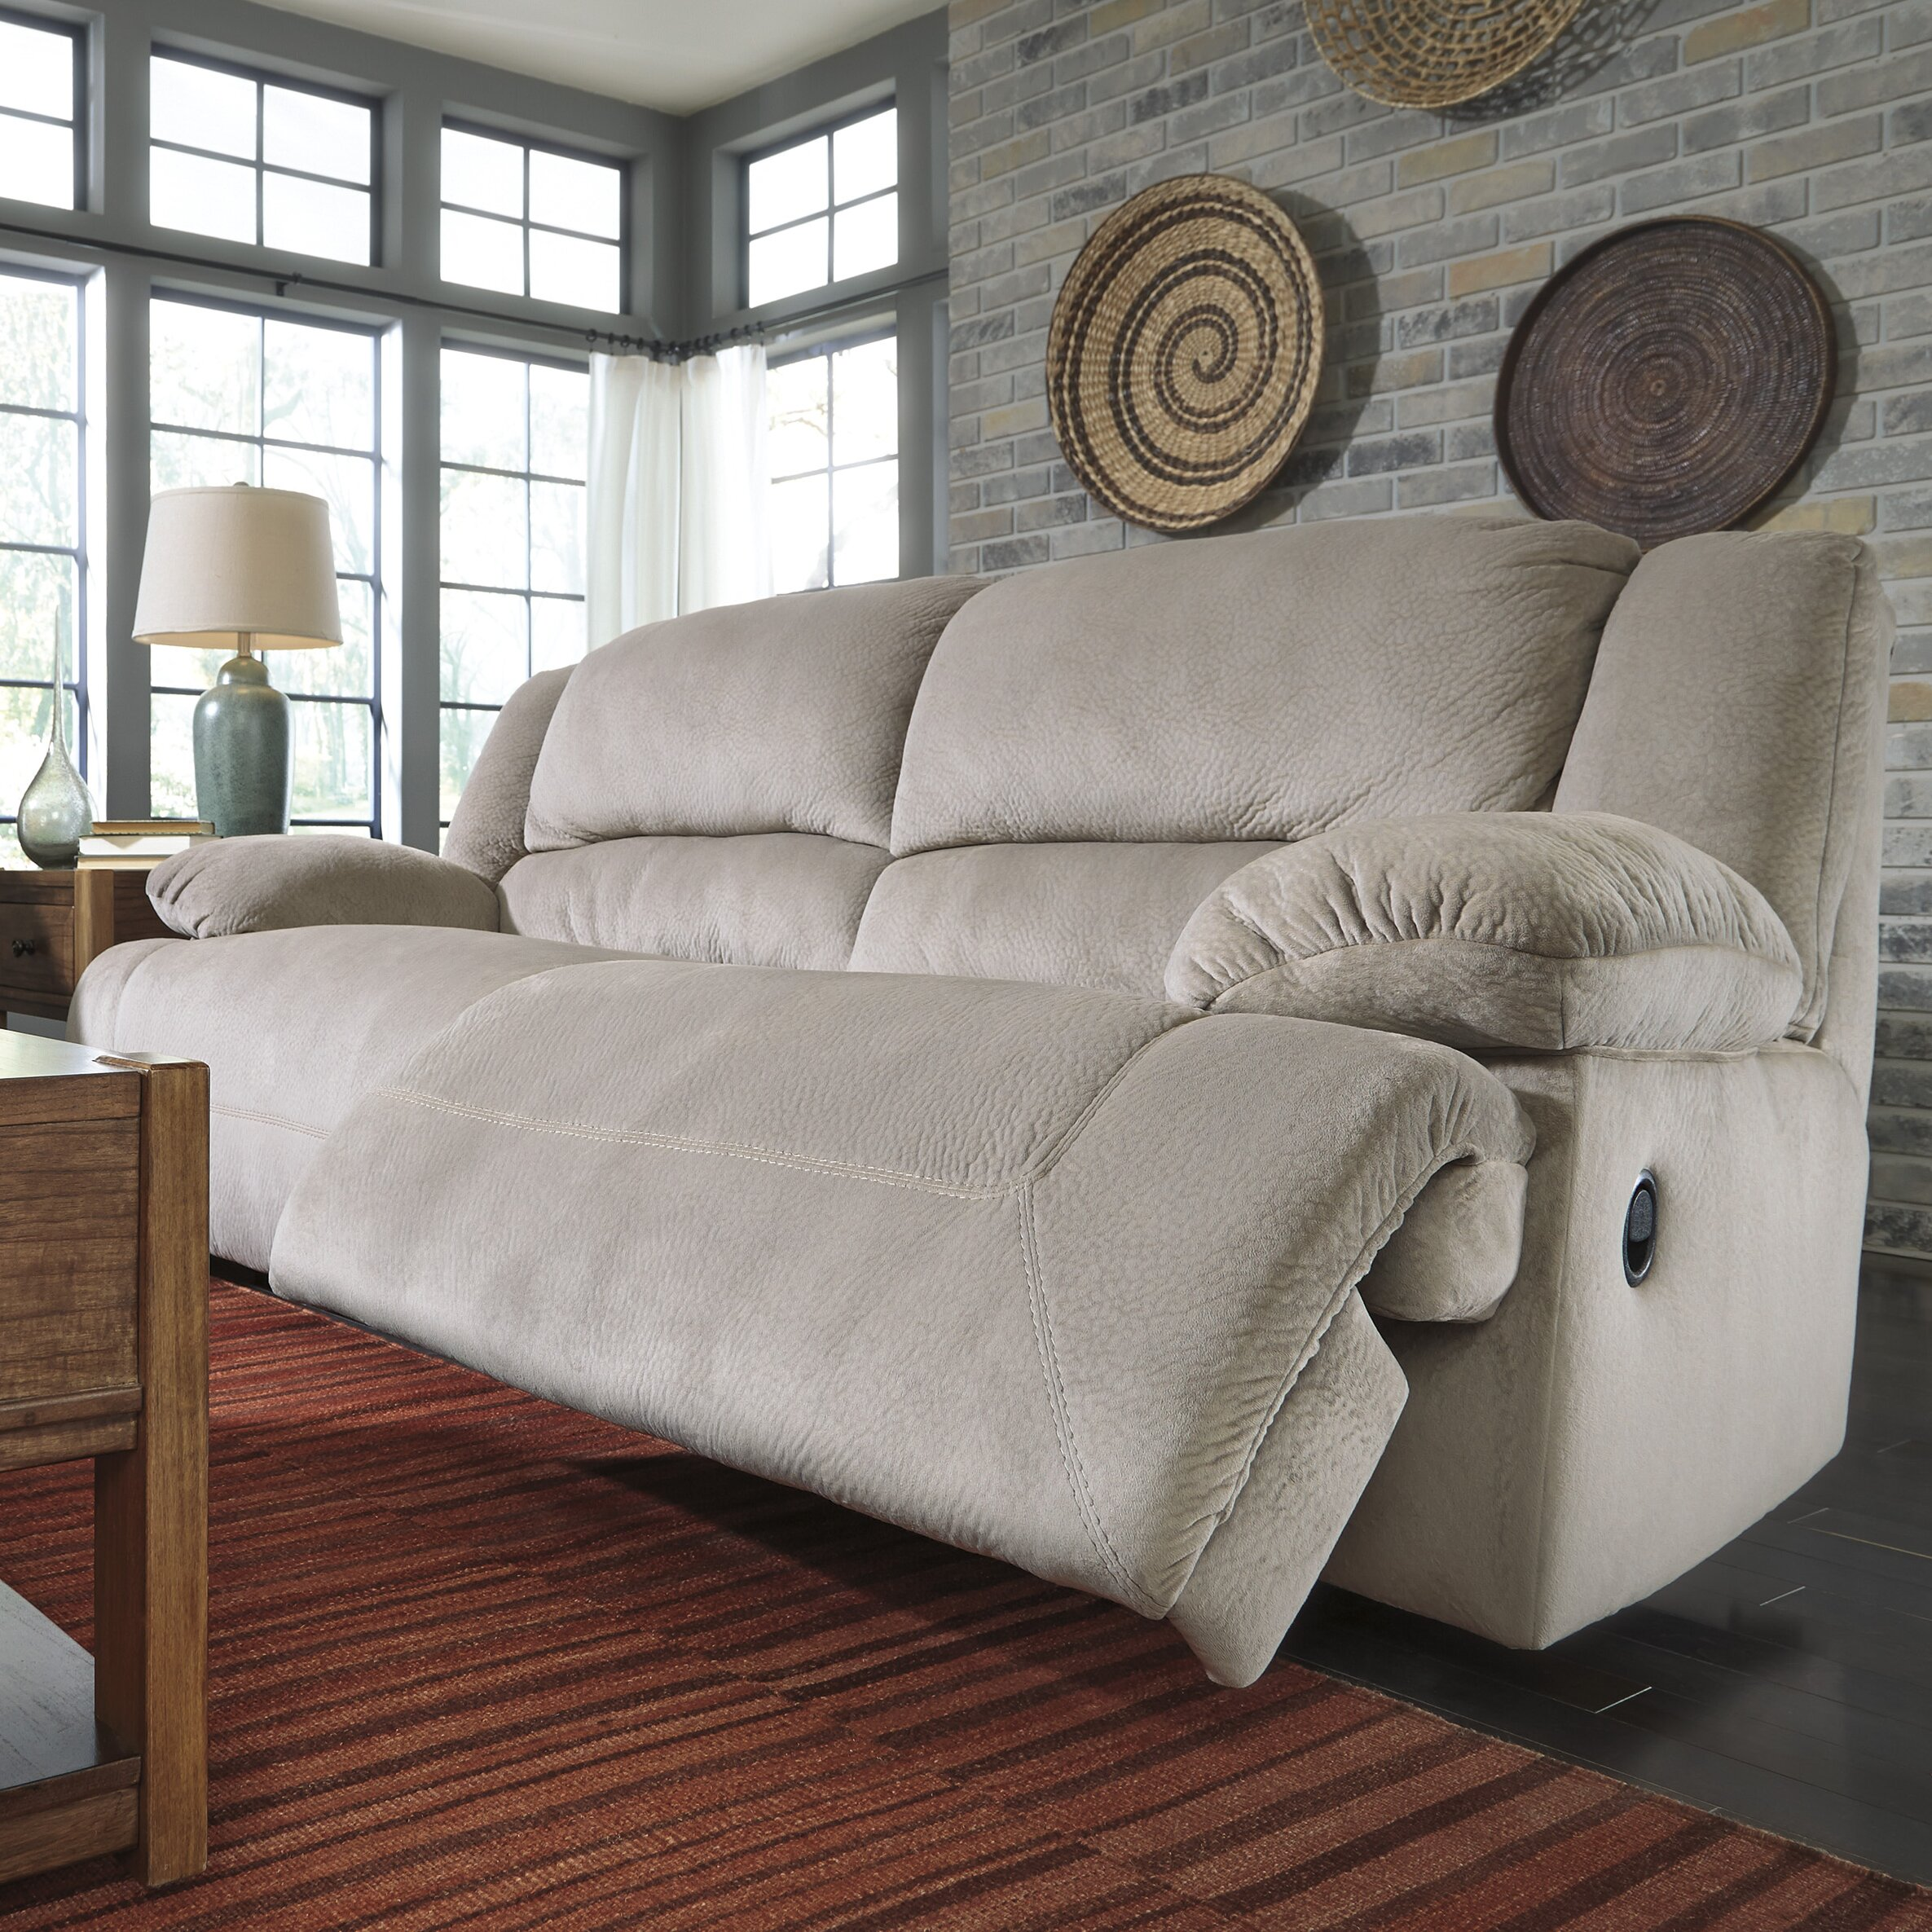 Signature Design By Ashley Tolette 2 Seat Reclining Sofa Reviews Wayfair